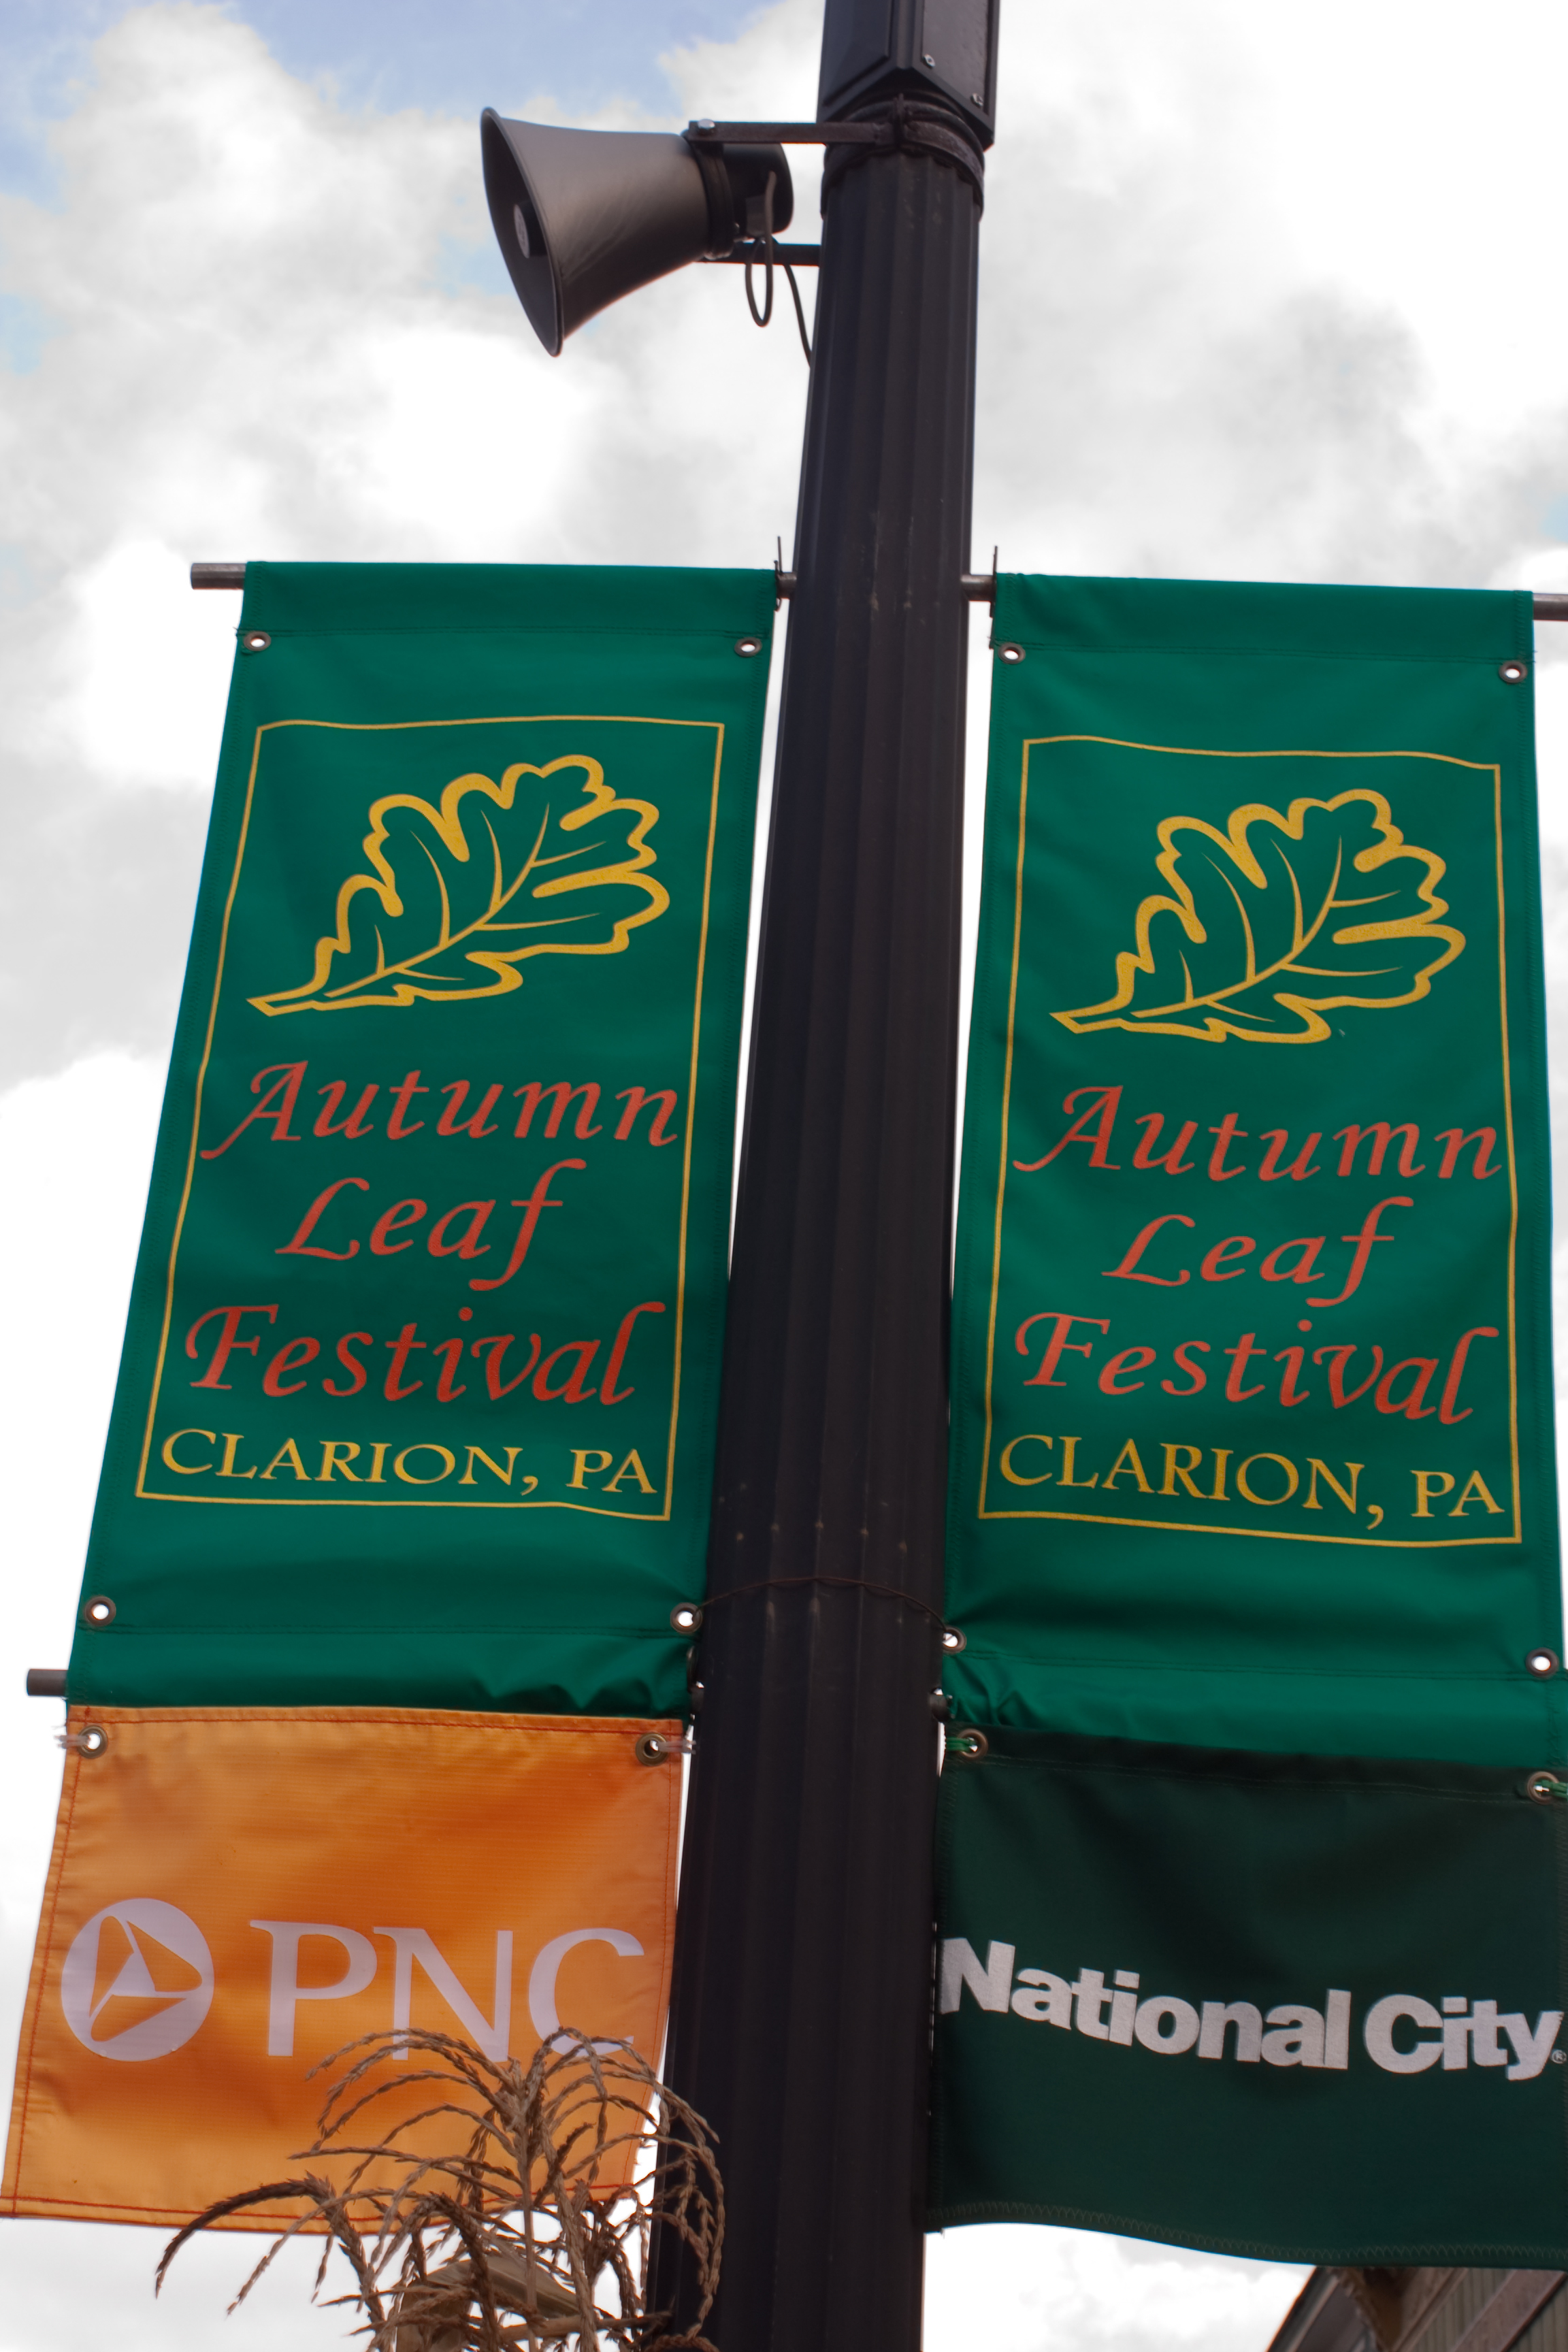 Street banners for the Autumn Leaf Festival